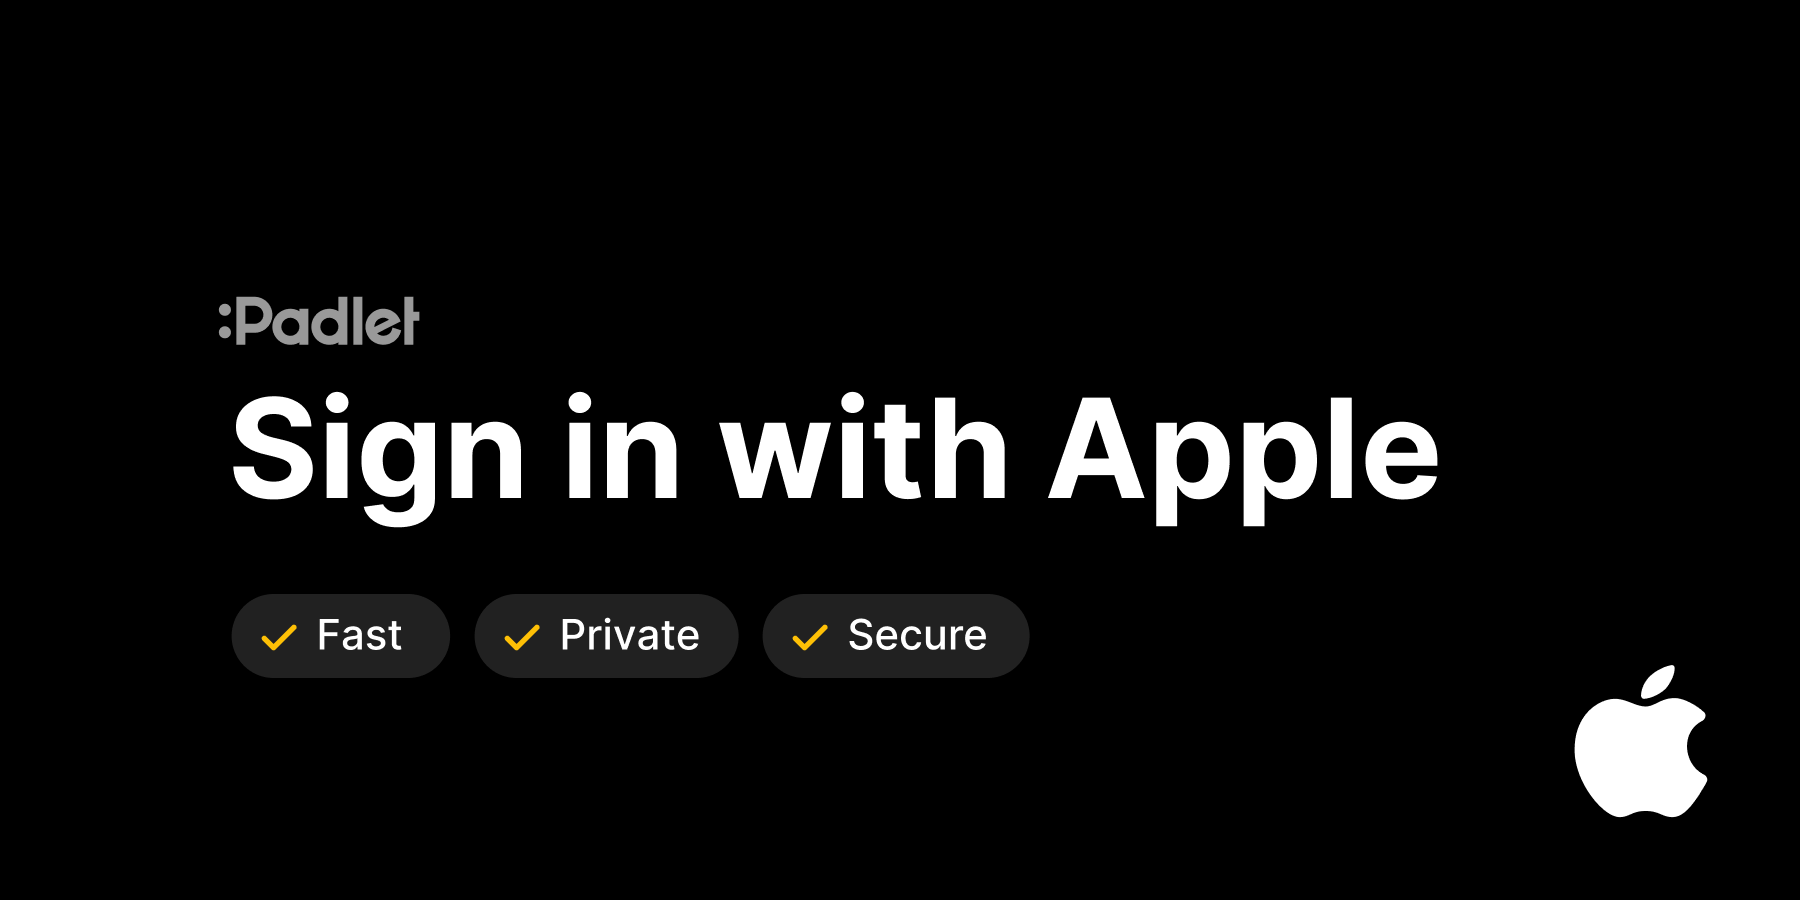 You can now Log in to Padlet with your Apple ID. It's fast